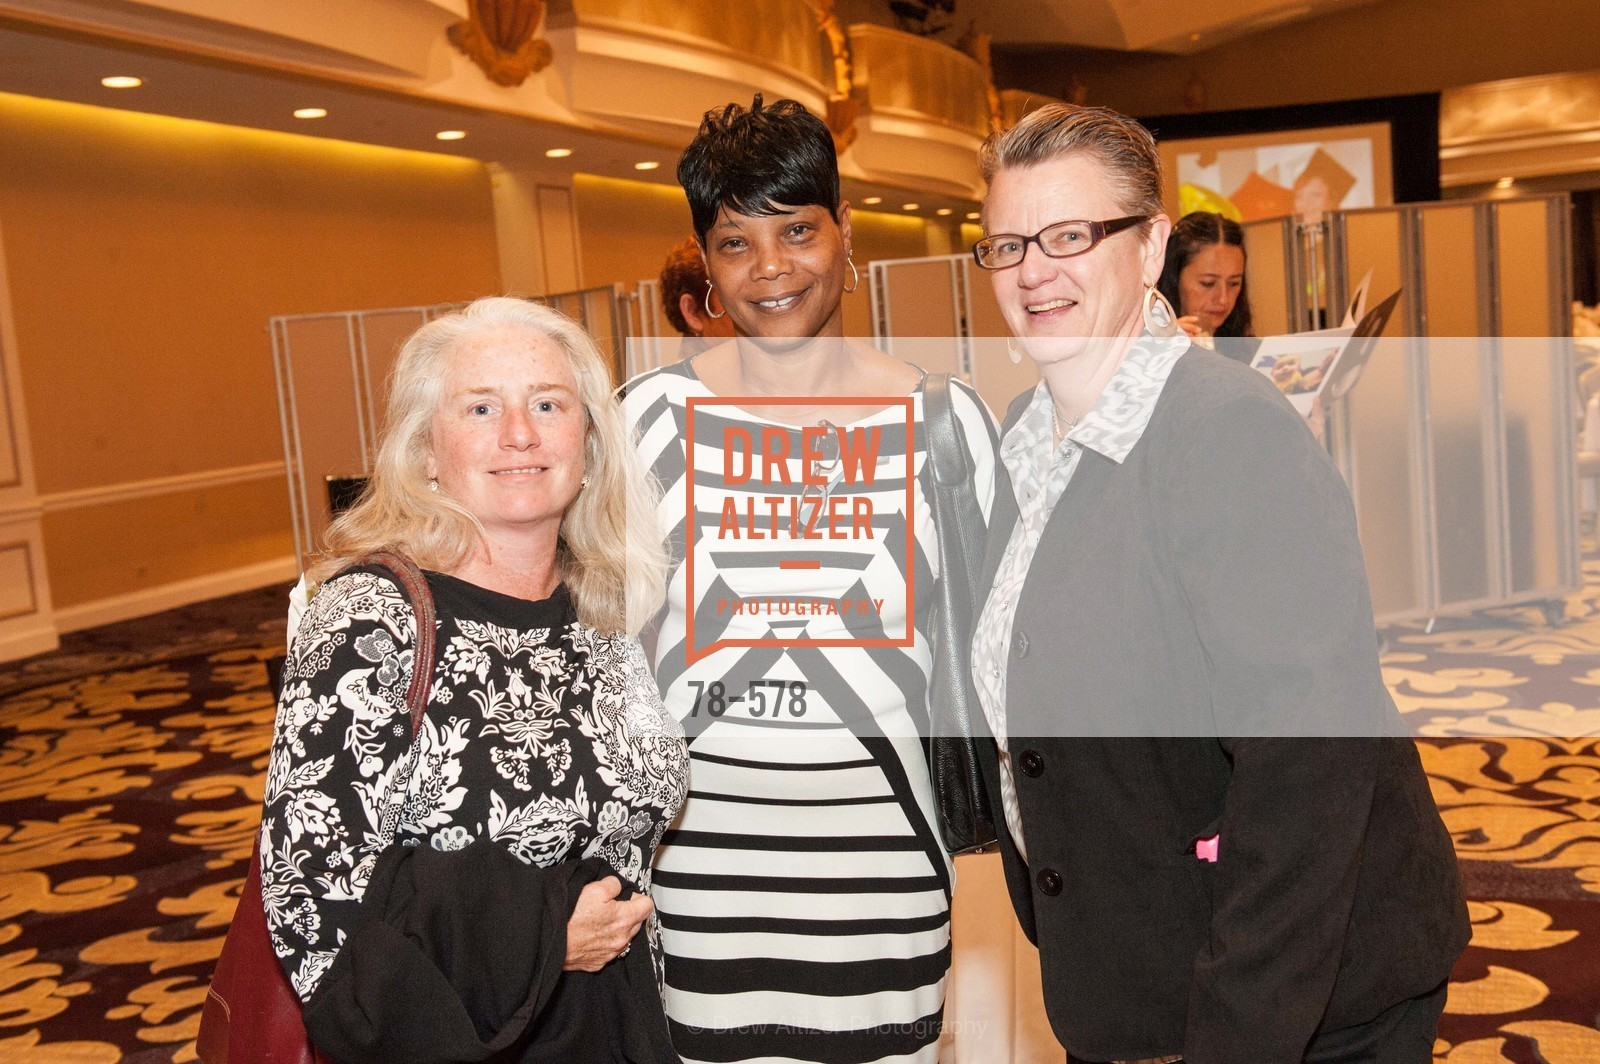 Alice Hargis, Patricia Richards, Elyse Graham, HOMELESS PRENATAL Annual Luncheon 2014, US, October 1st, 2014,Drew Altizer, Drew Altizer Photography, full-service agency, private events, San Francisco photographer, photographer california